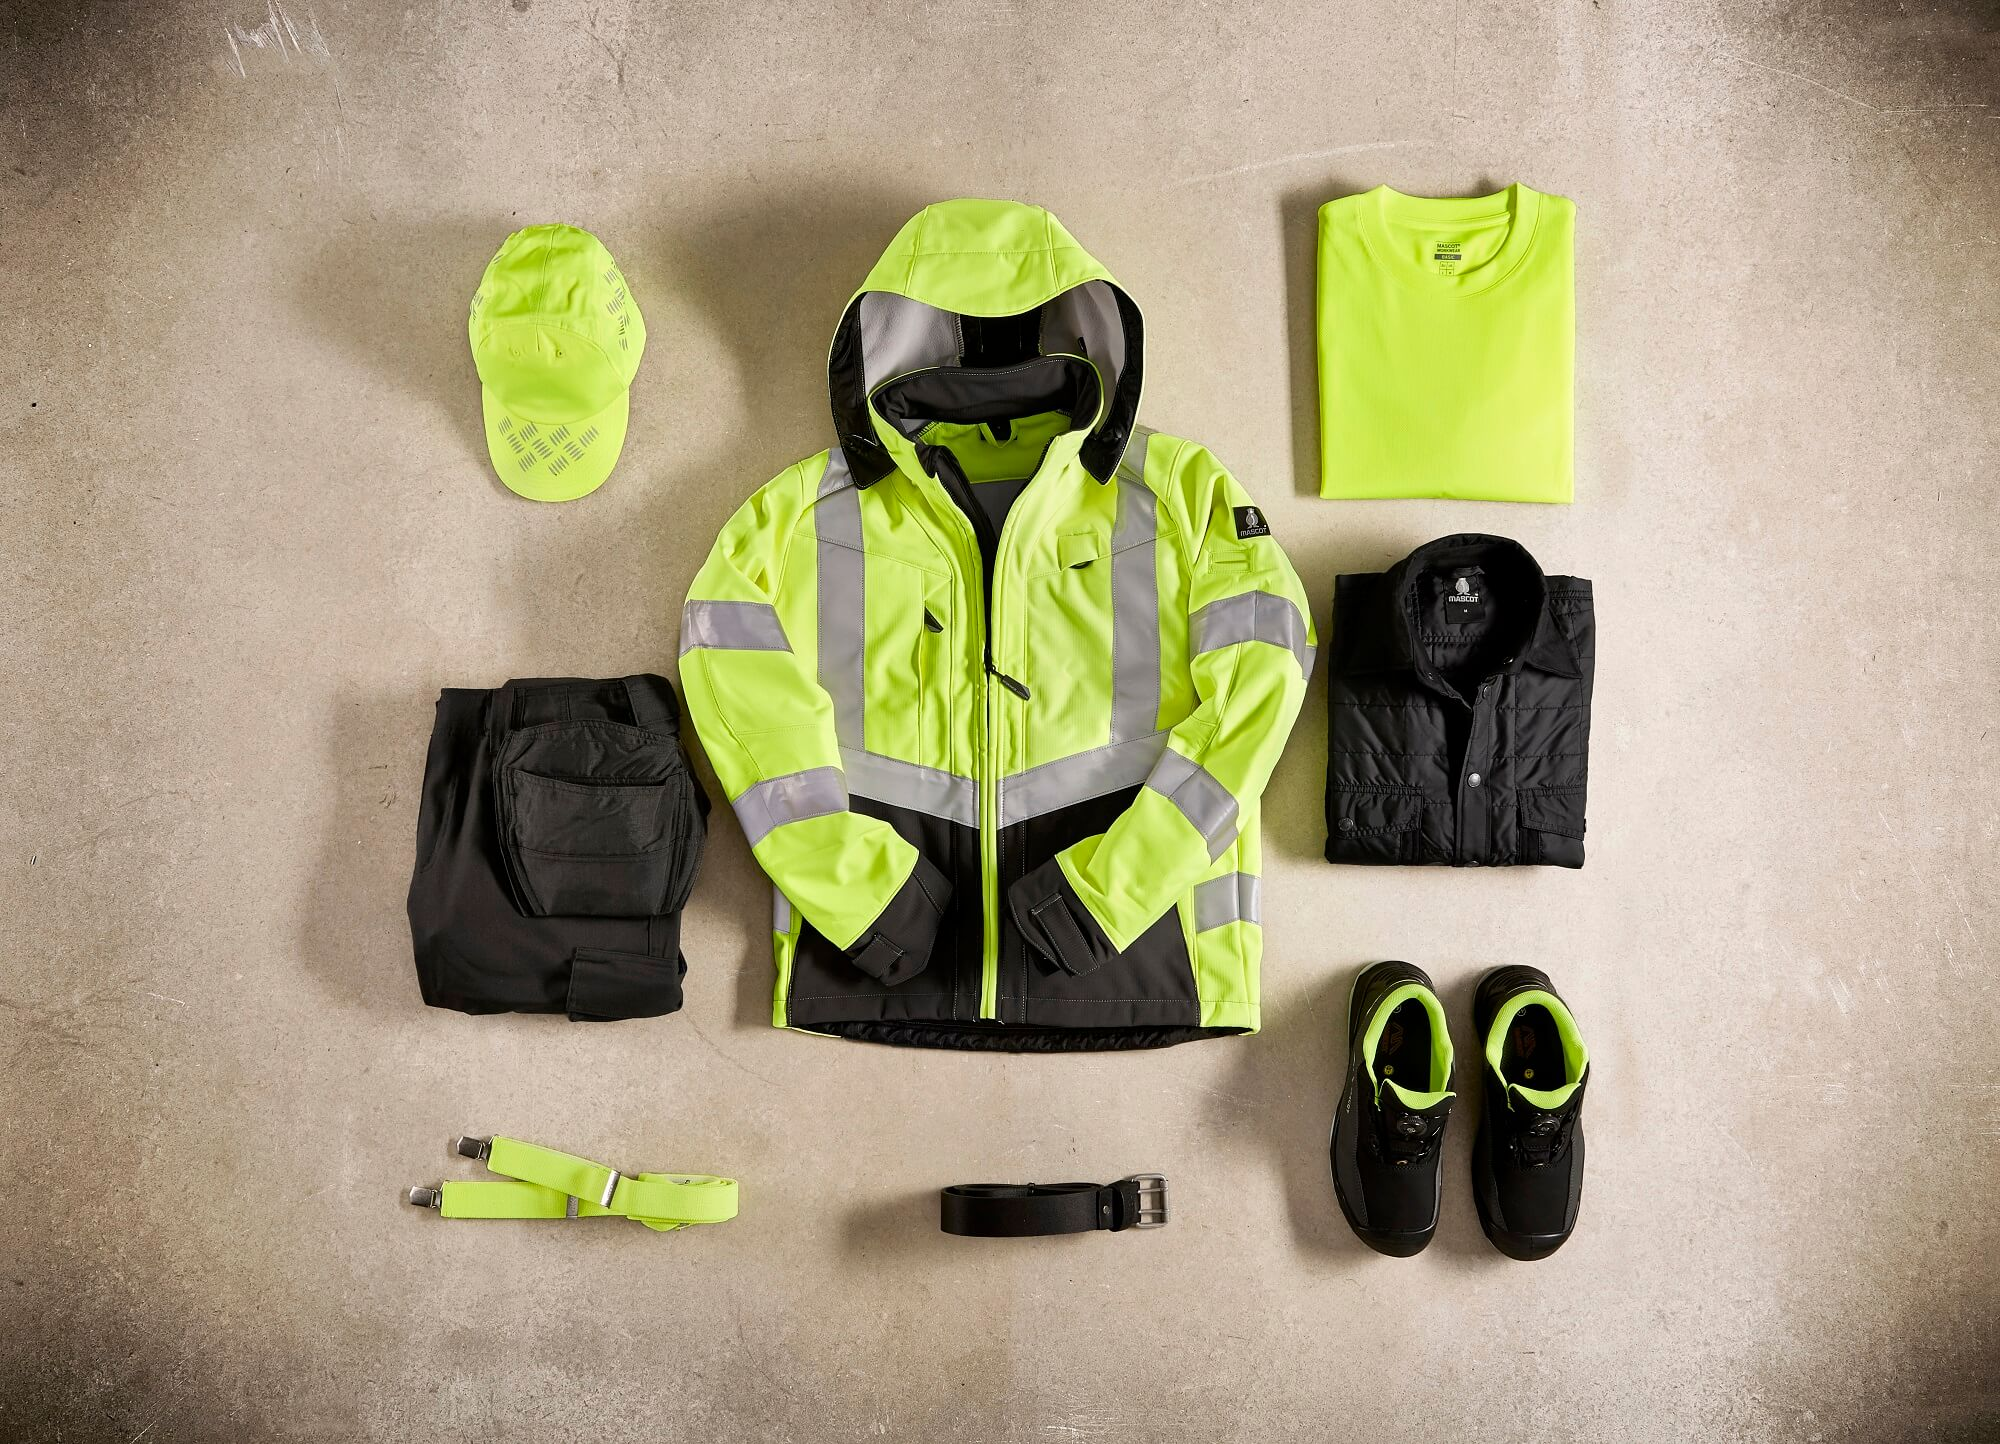 Fluorescent yellow - Jacket, T-shirt, Trousers & Safety footwear - Collage